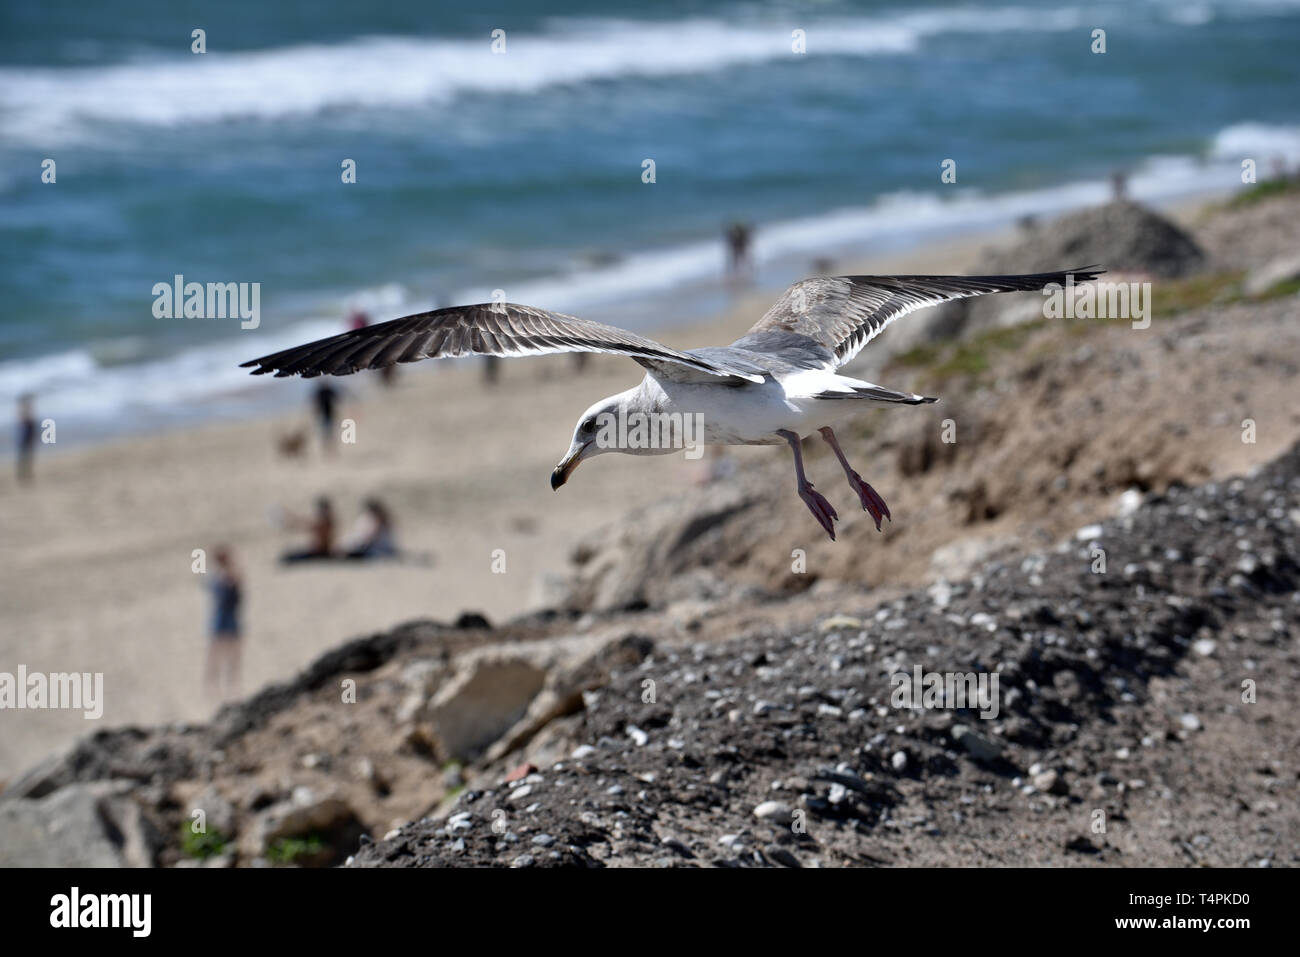 A seagull as it takes off from the shore in flight - Stock Image